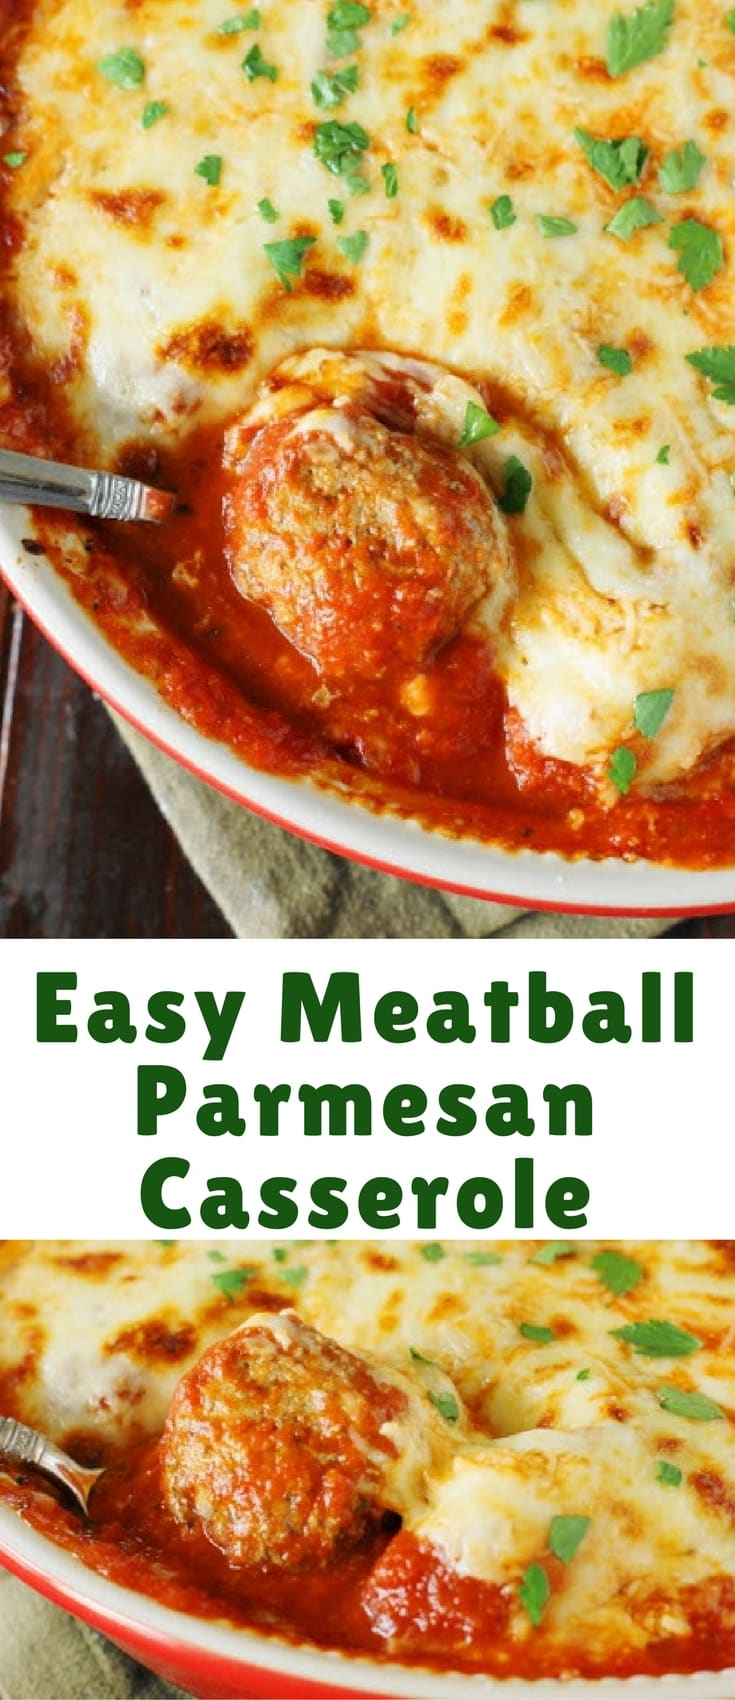 Bake up just five simple ingredients to enjoy the cheesy, saucy goodness of this Meatball Parmesan Casserole! Spoon it over noodles or warm garlic bread slices for one super easy and satisfying meal.